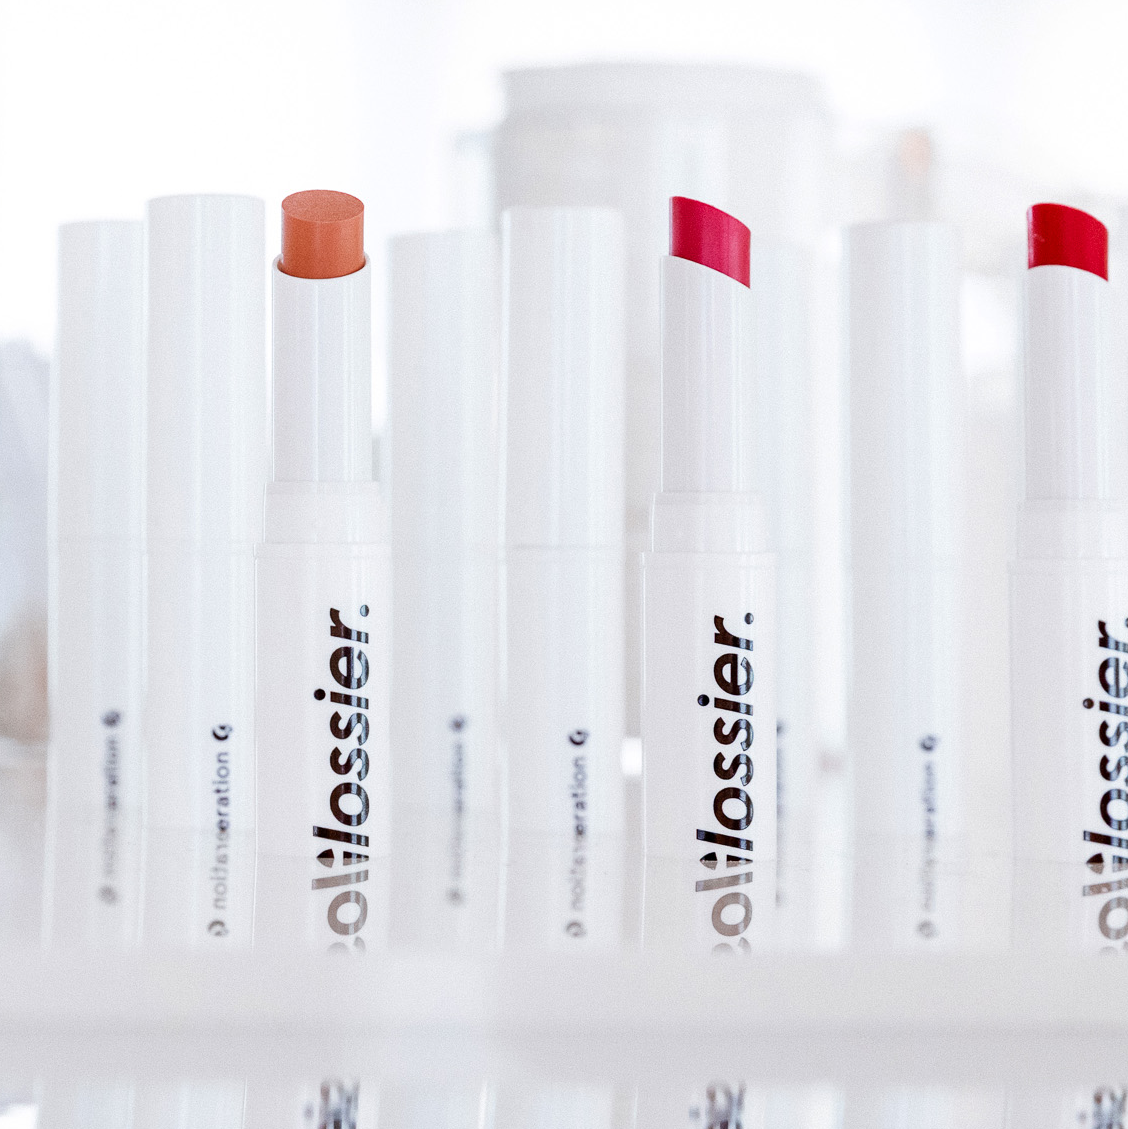 3f335d91ba43 Cult beauty brand Glossier opens first pop-up shop in Dallas ...